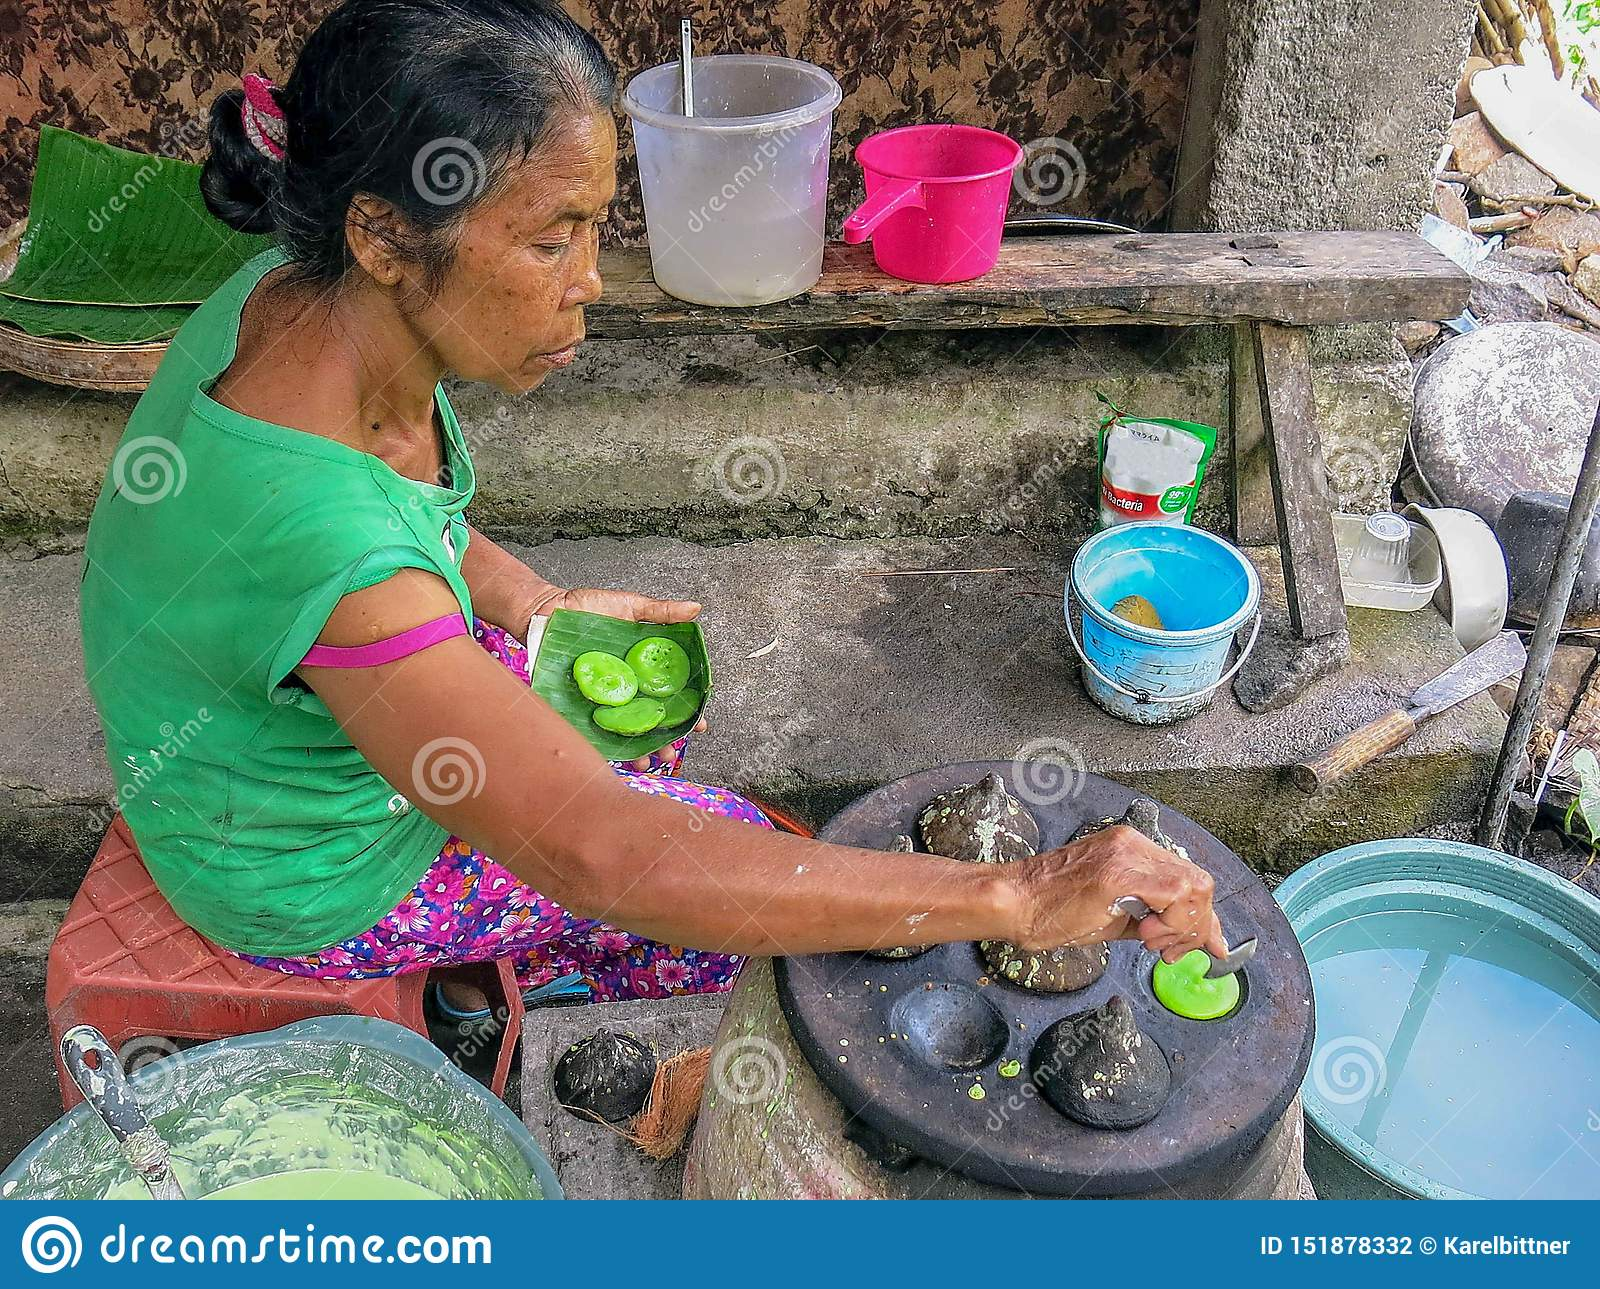 Senior Indonesian woman prepares traditional sweet dish. A very tasty dessert made from dough that is baked in stone form. Primiti